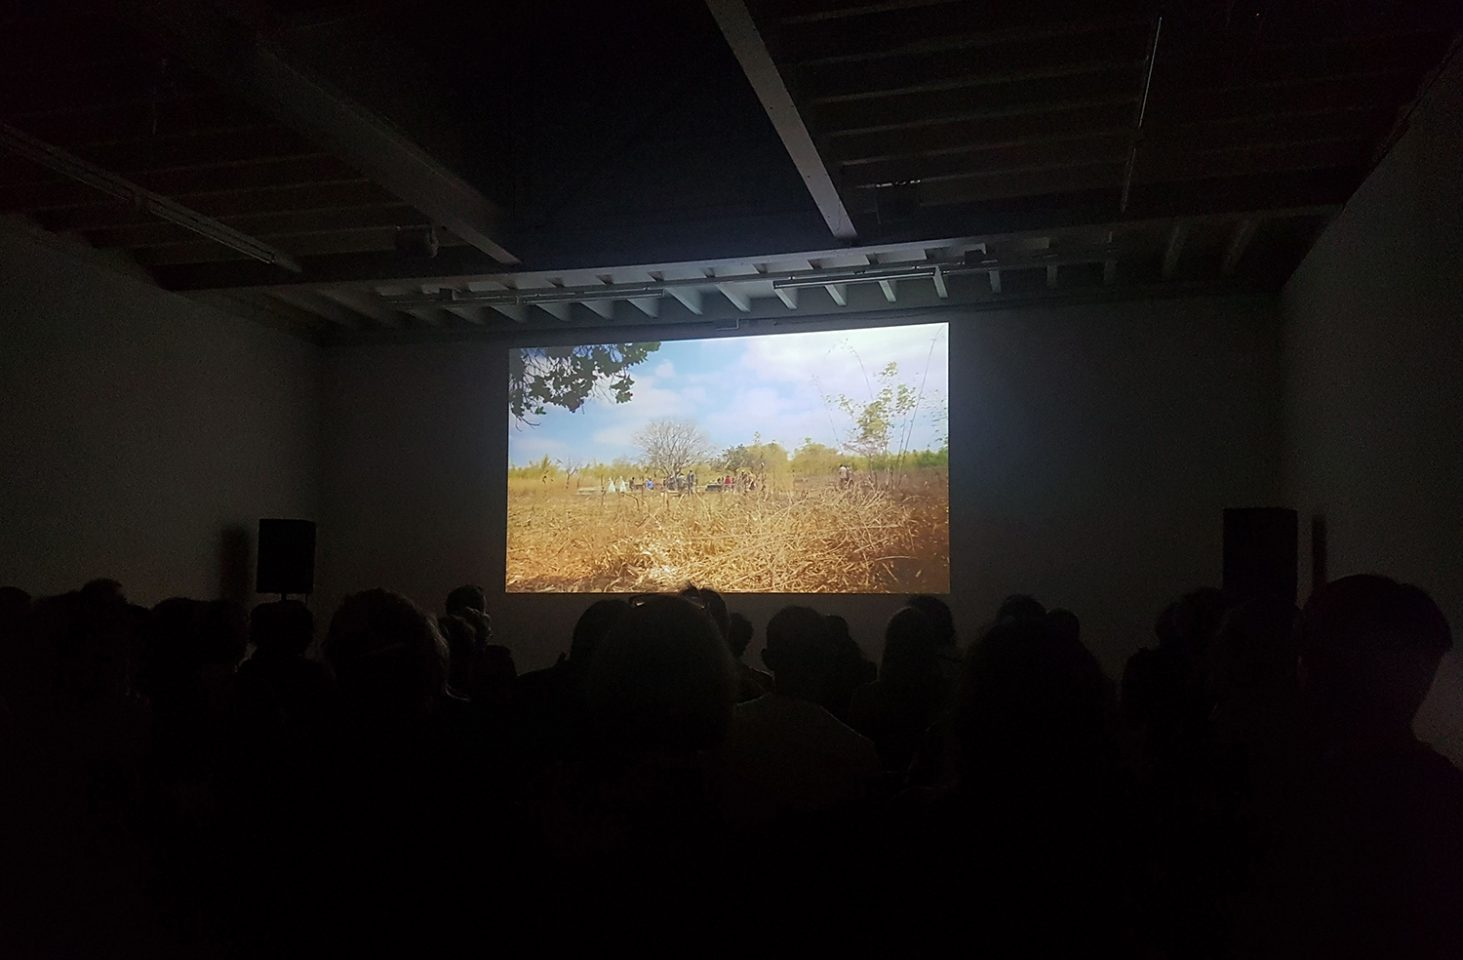 South by South screening in the Clore Studio